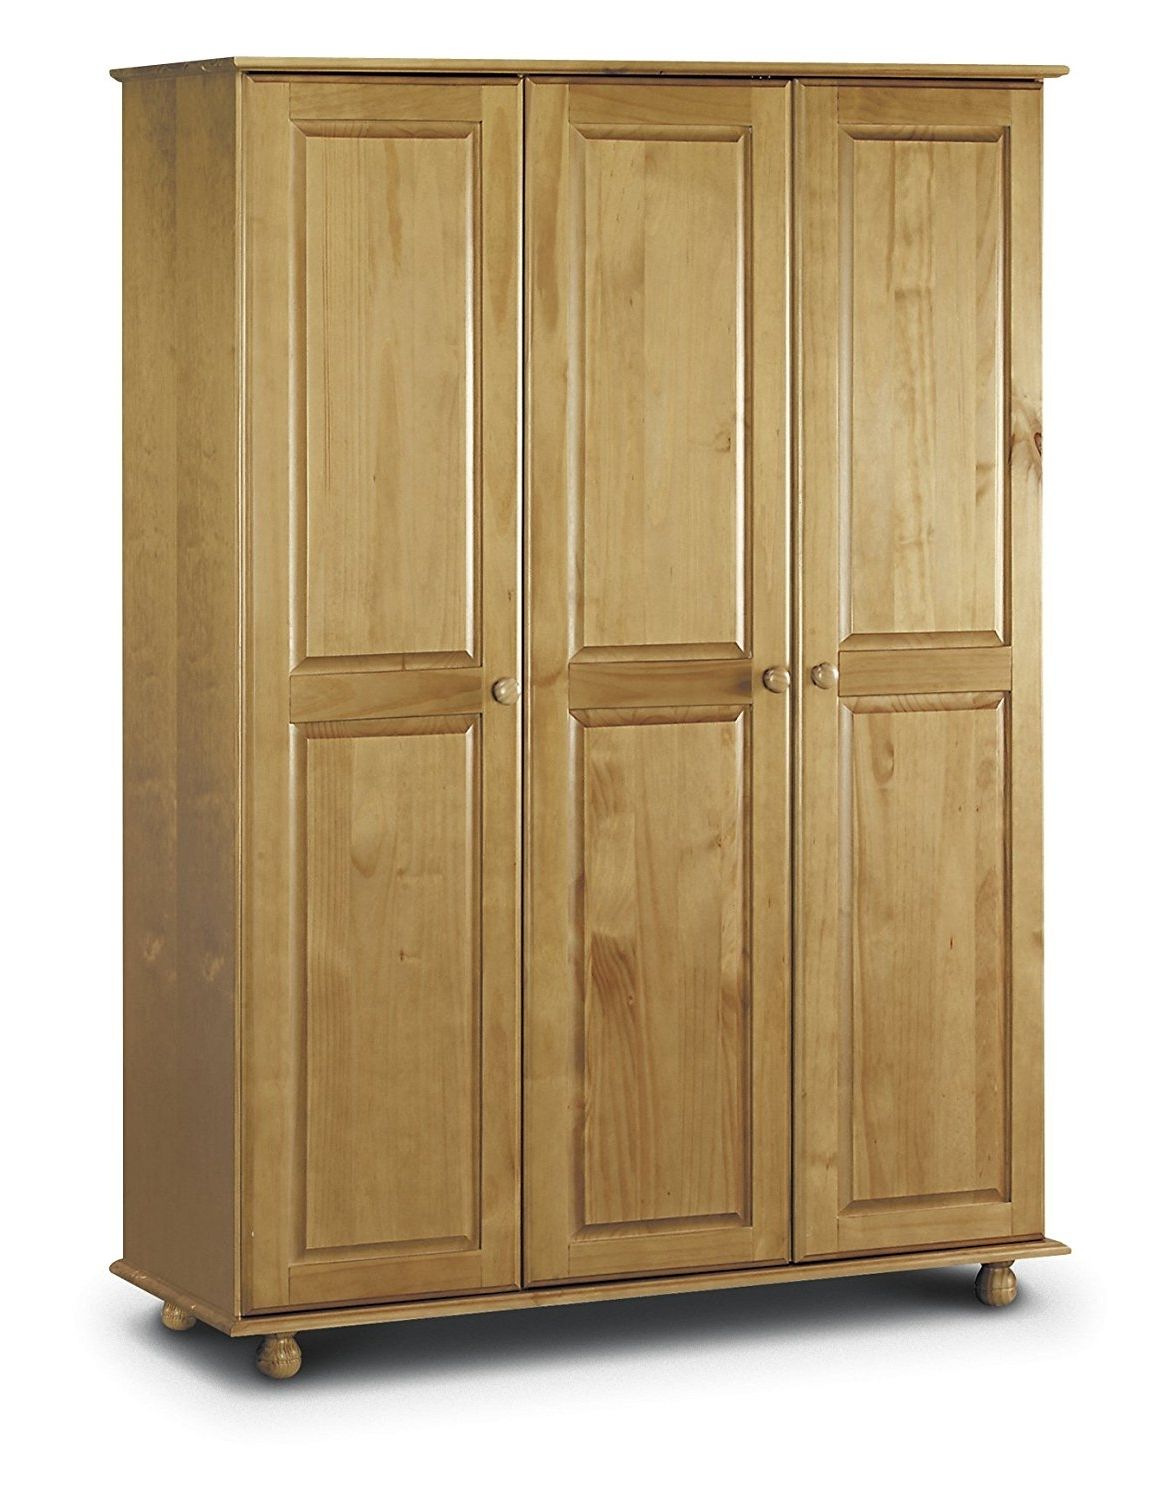 3 Door Pine Wardrobes Pertaining To Fashionable Julian Bowen Pickwick 3 Door All Hanging Pine Wardrobe: Amazon (View 1 of 15)